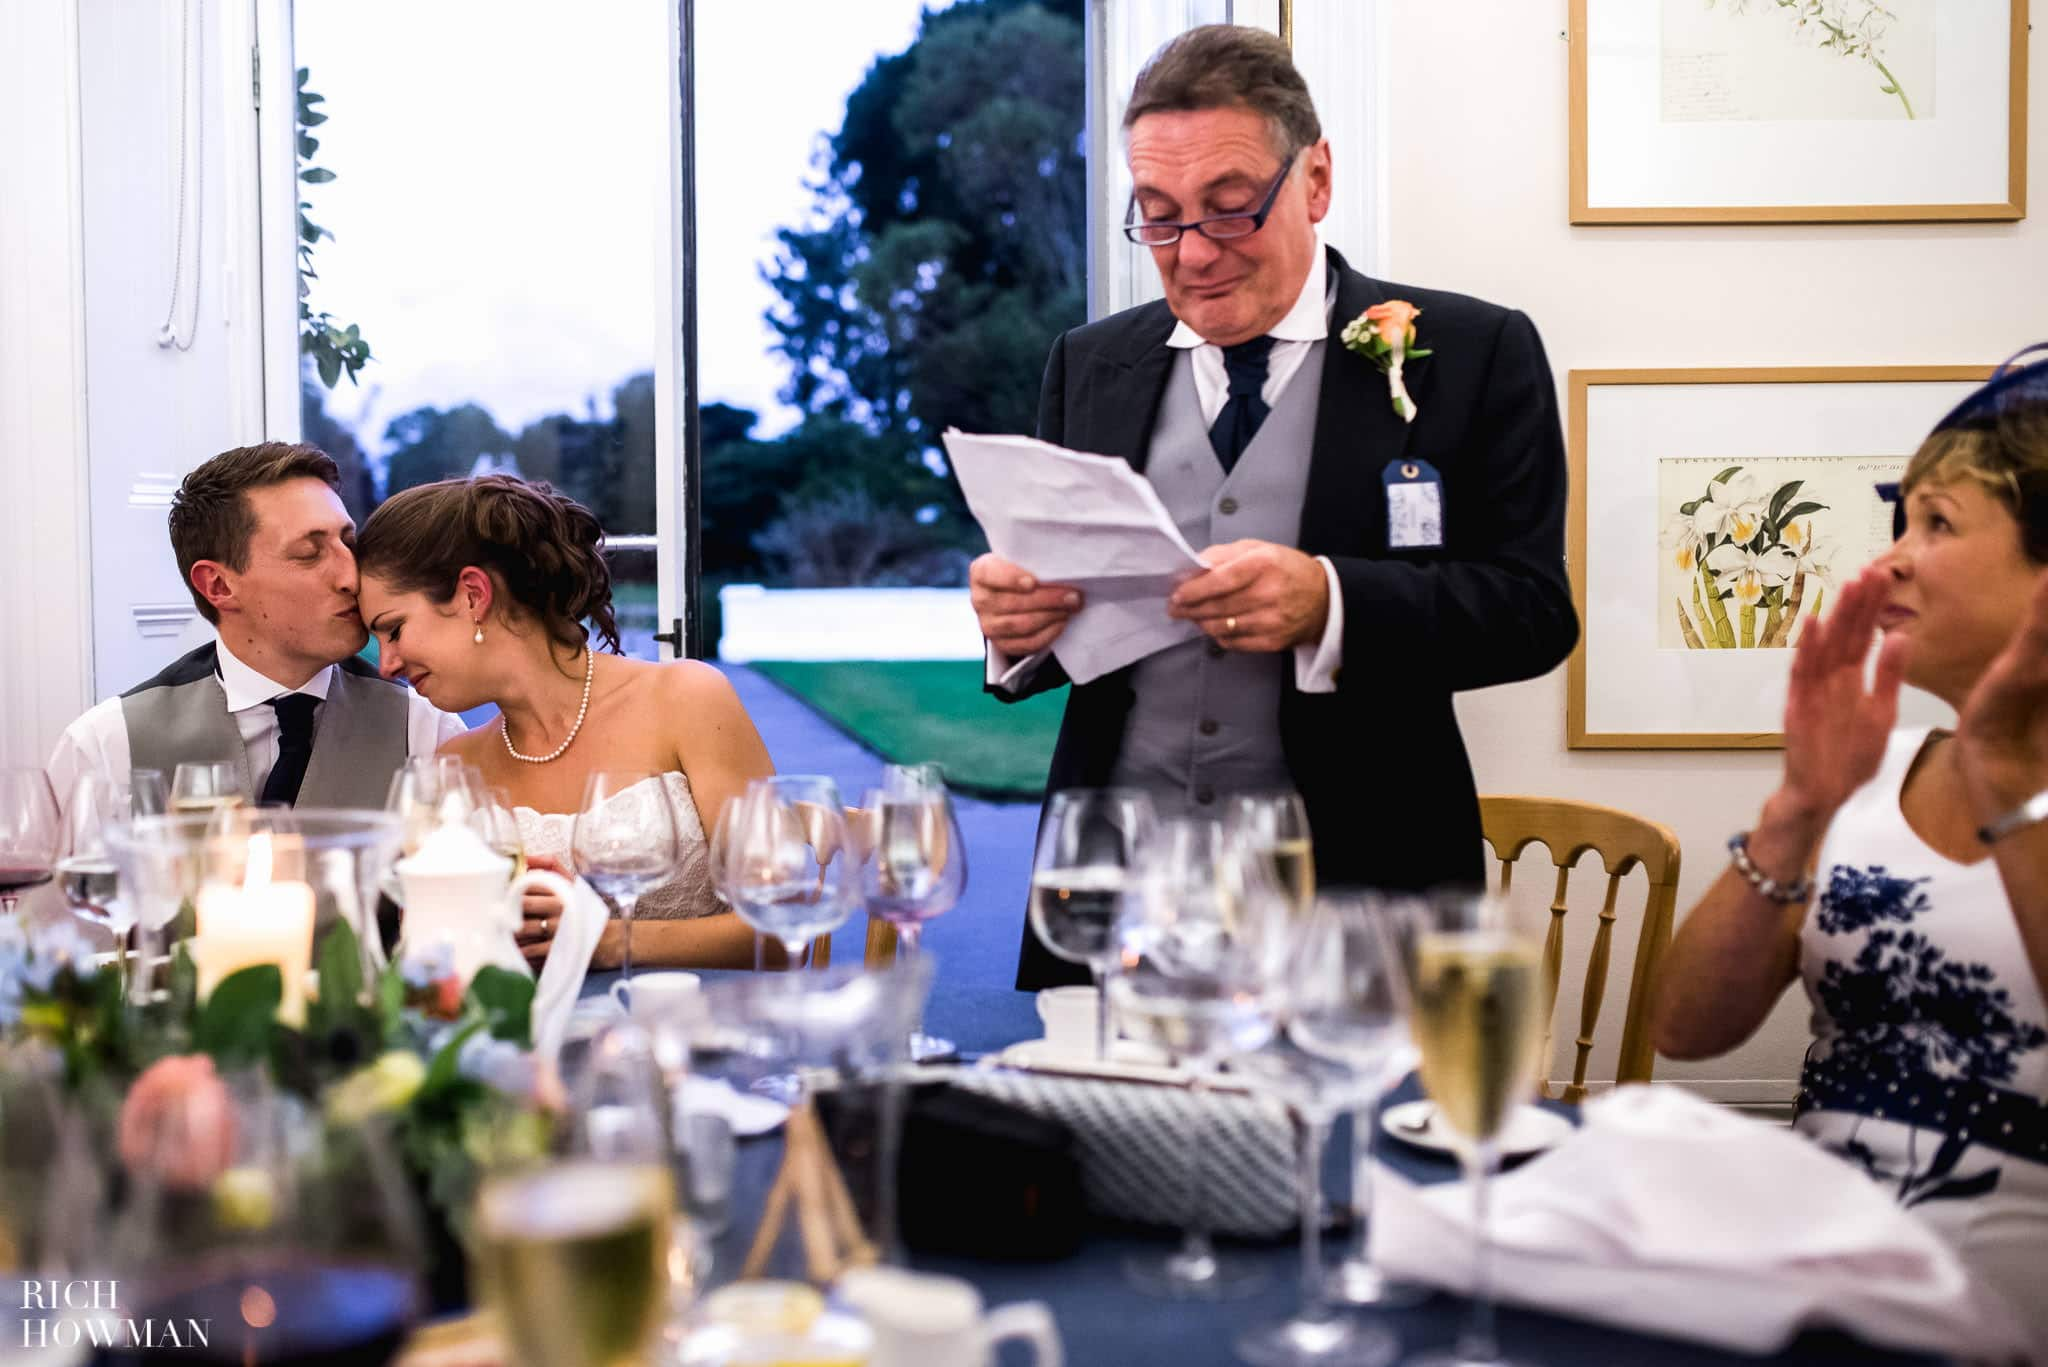 The brides father makes a speech whilst the groom comforts his new wife during their wedding reception at Cambridge Cottage in Kew